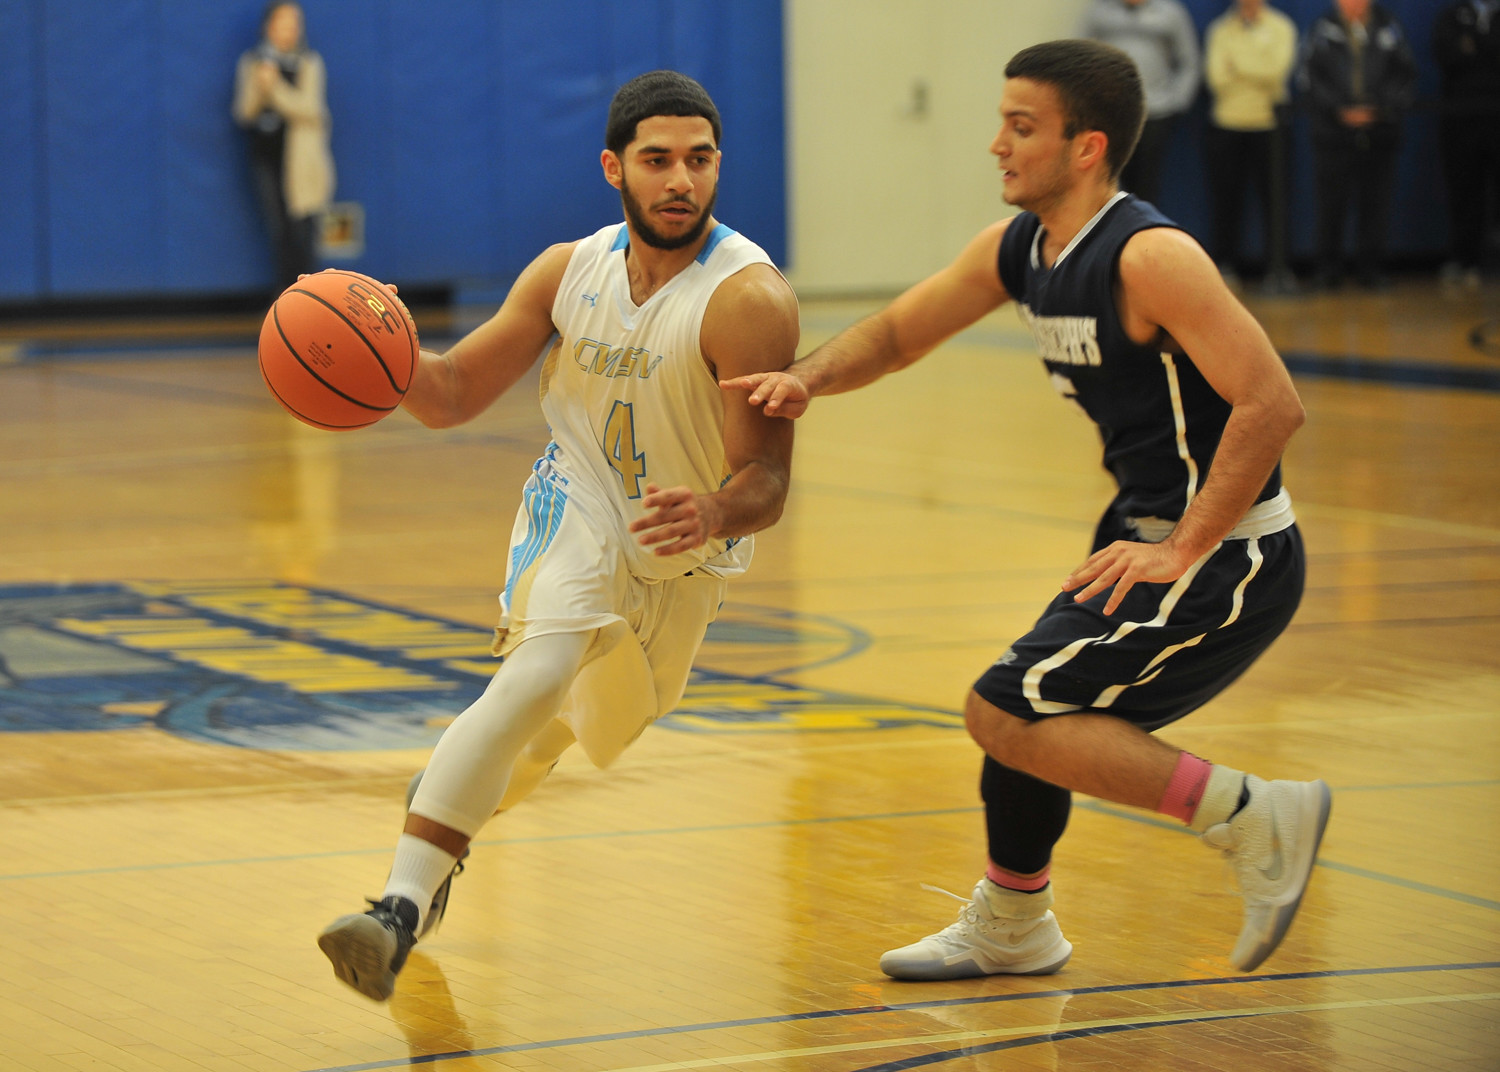 Mount Saint Vincent senior guard Jose Maestre, who had nine points versus Saint Joseph's, looks to work around a Bears' defender.